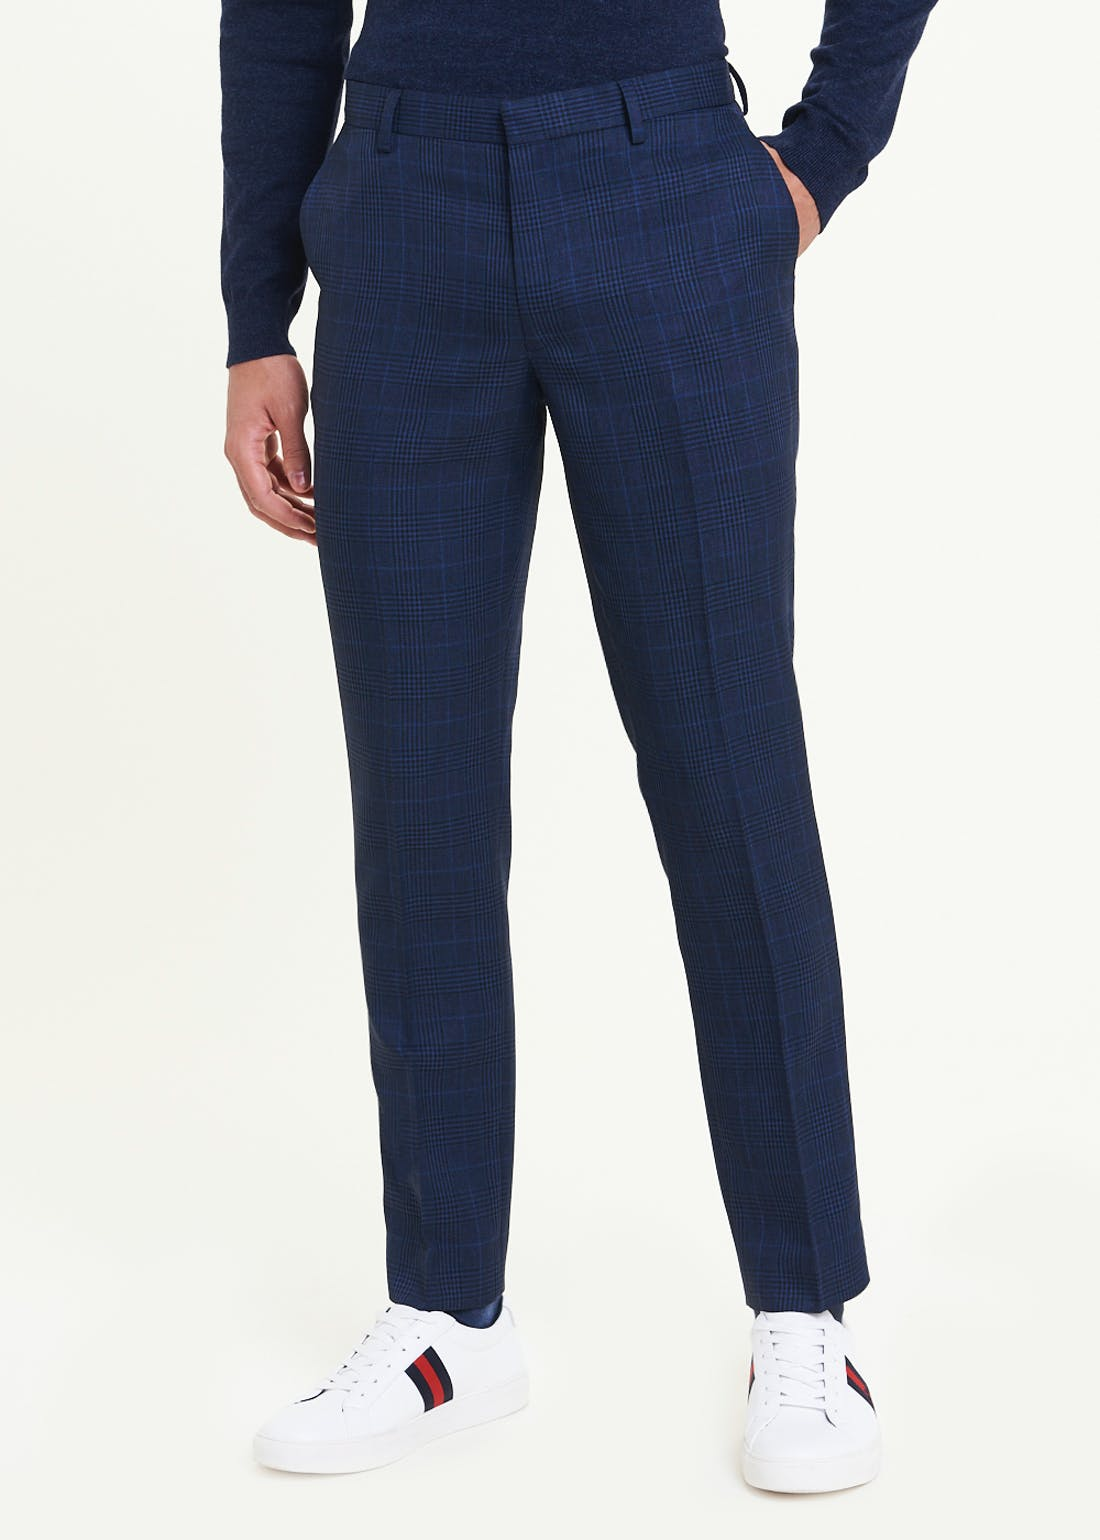 Taylor & Wright Huntley Slim Fit Check Trousers